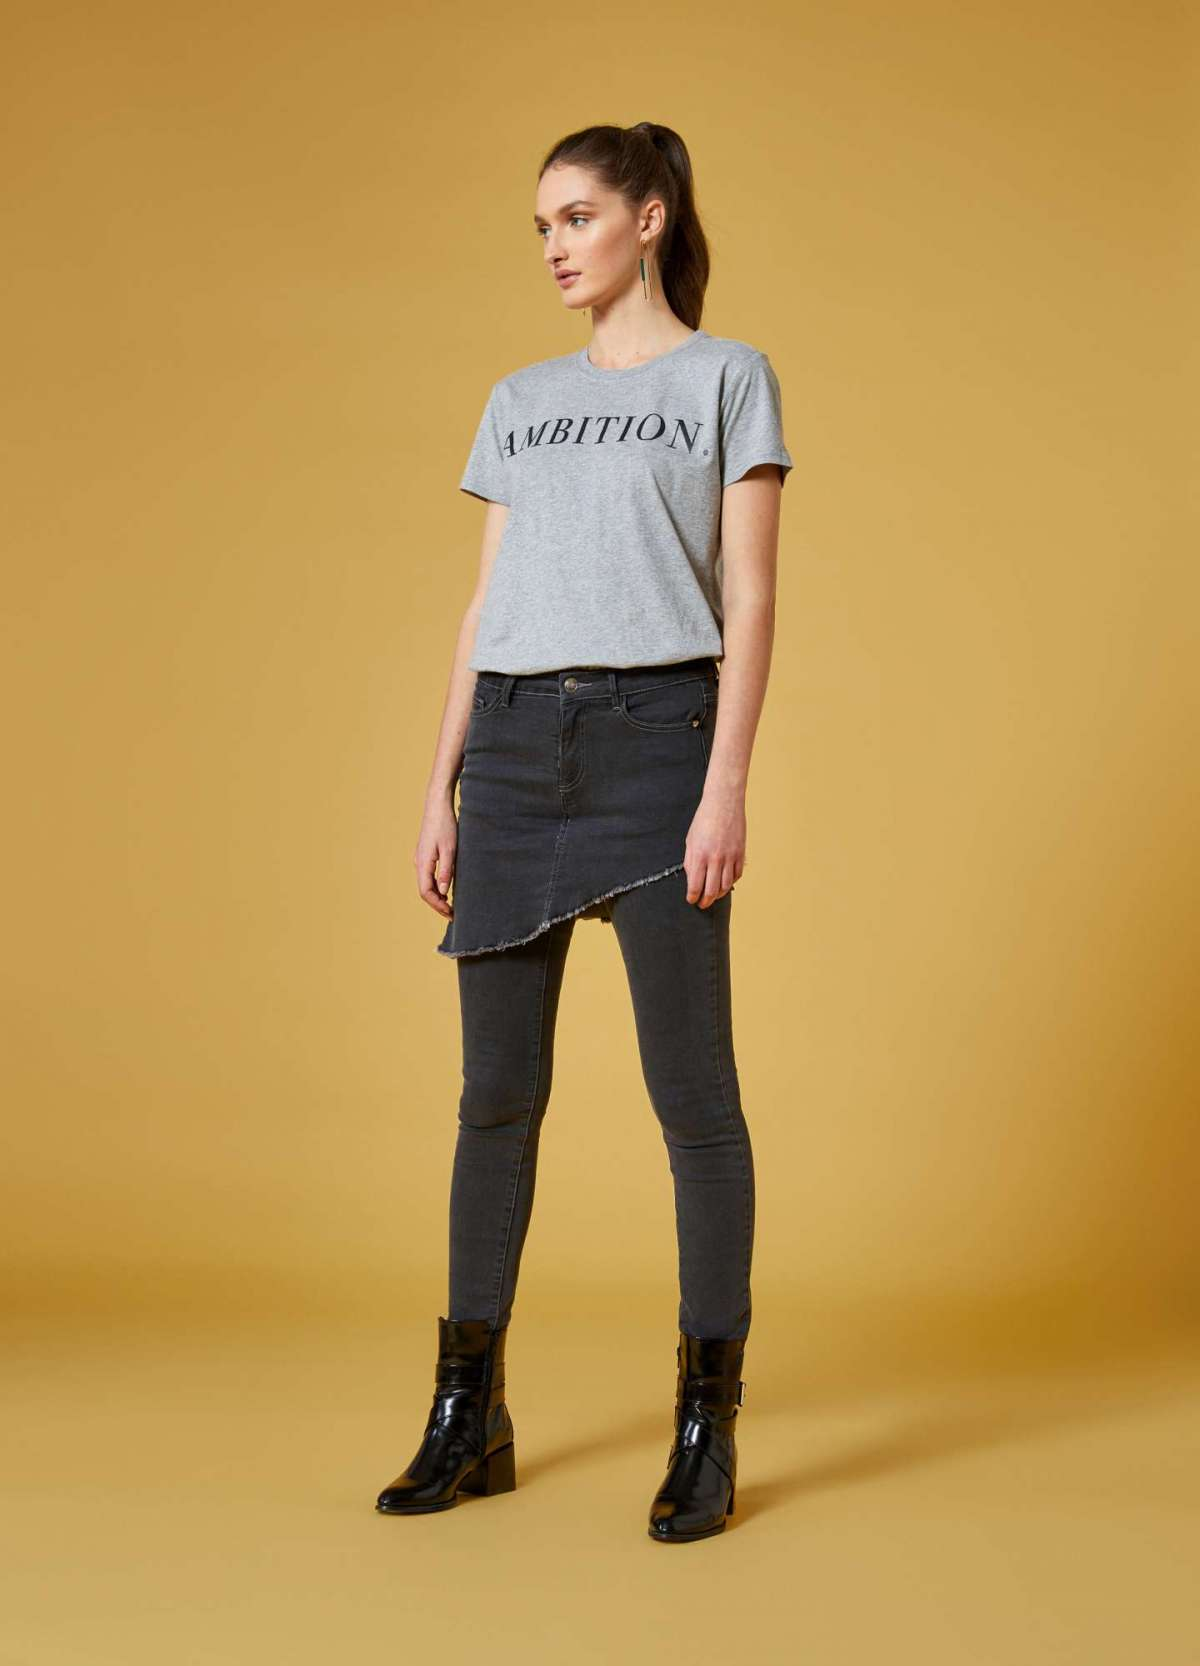 Jeans con gonna Kendall + Kylie per OVS a 34,99 euro